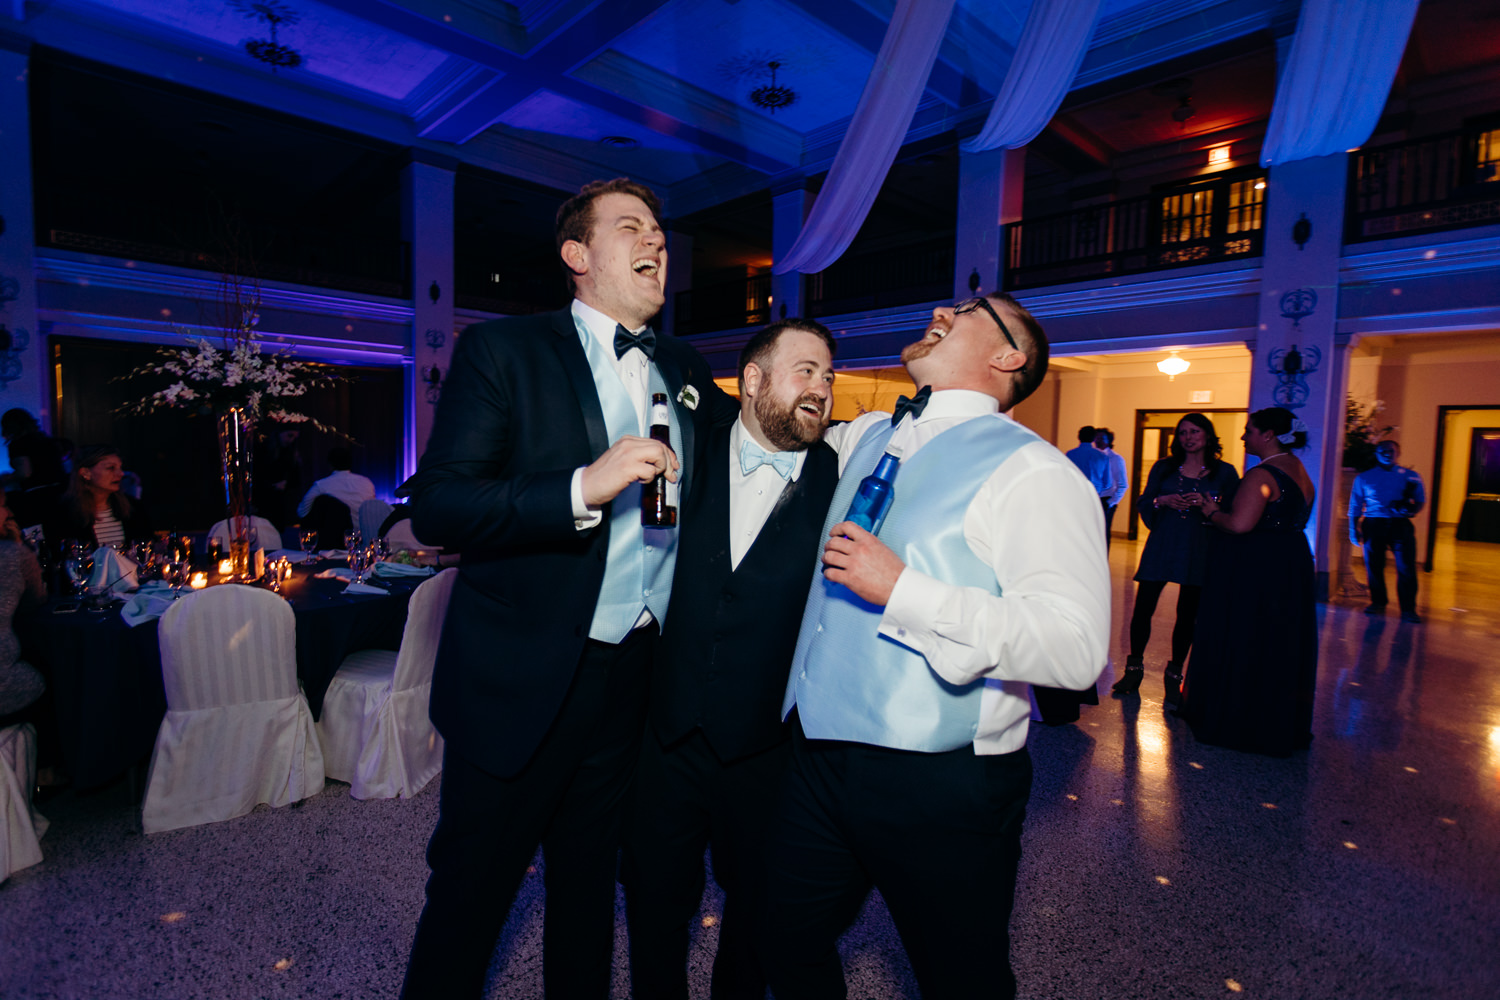 Grant Beachy photography goshen chicago south bend wedding editorial fitness-055.jpg